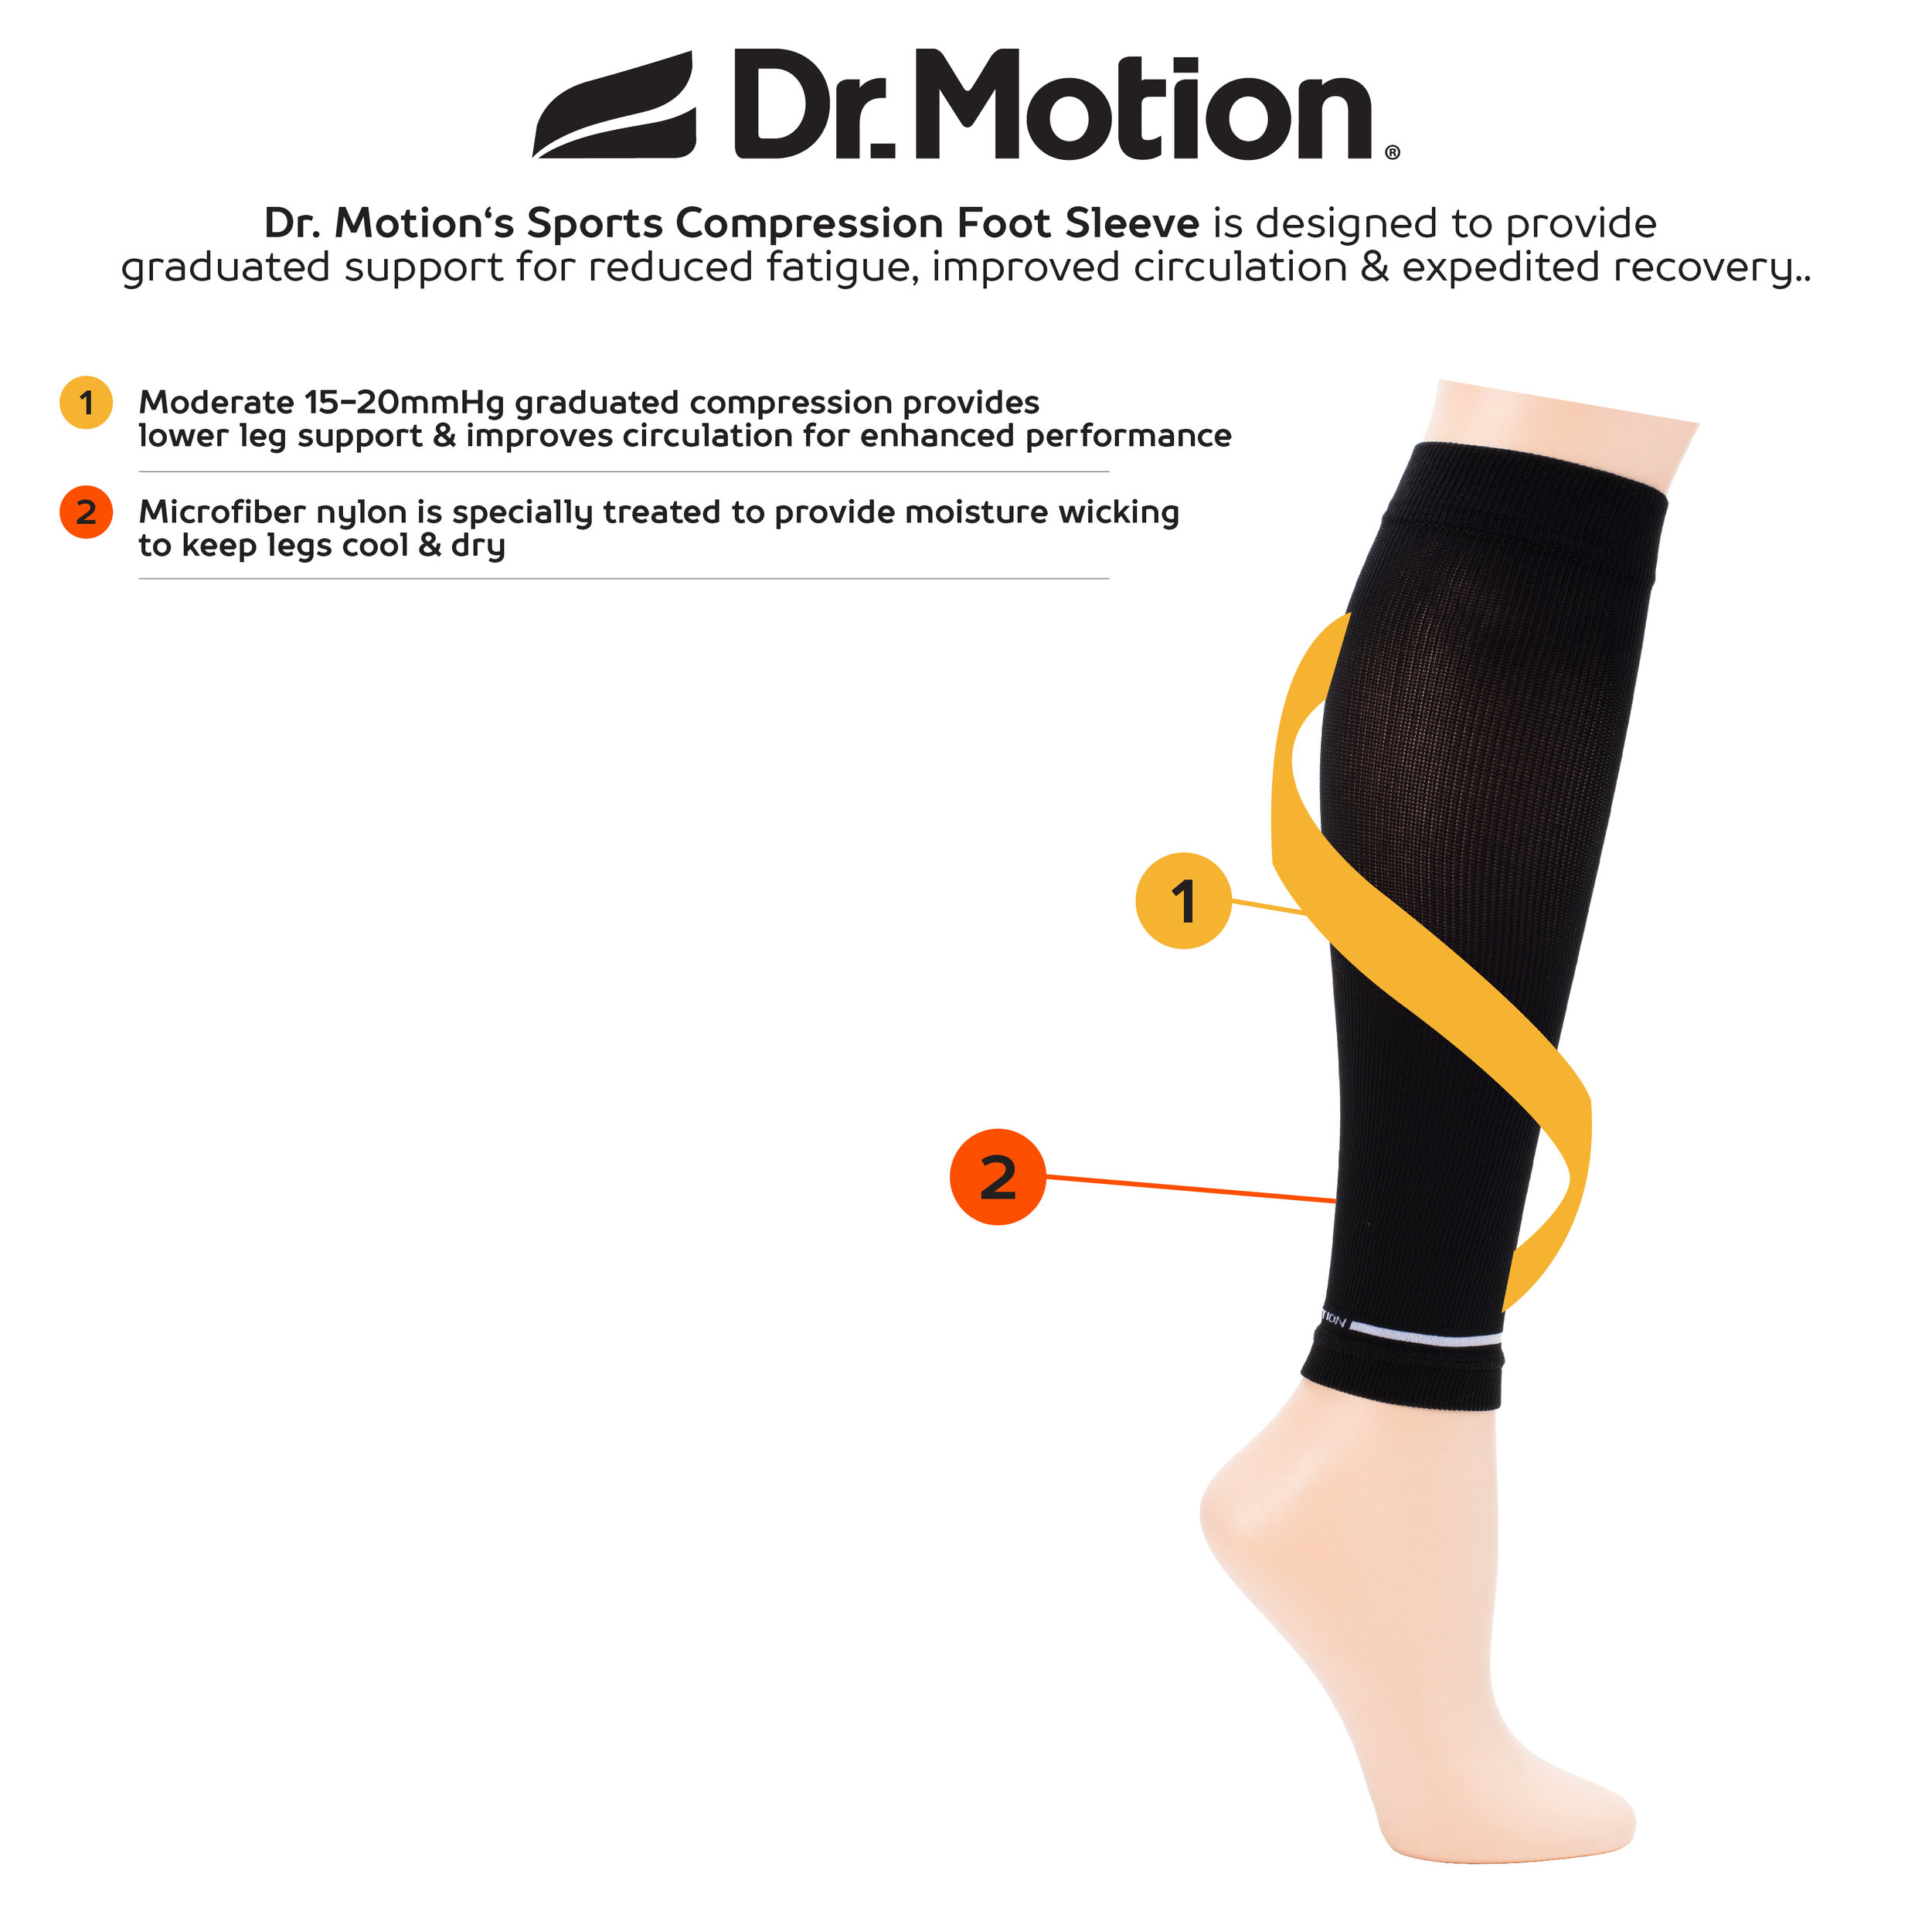 Dr Motion_Sports Compression Foot Sleeve.jpg